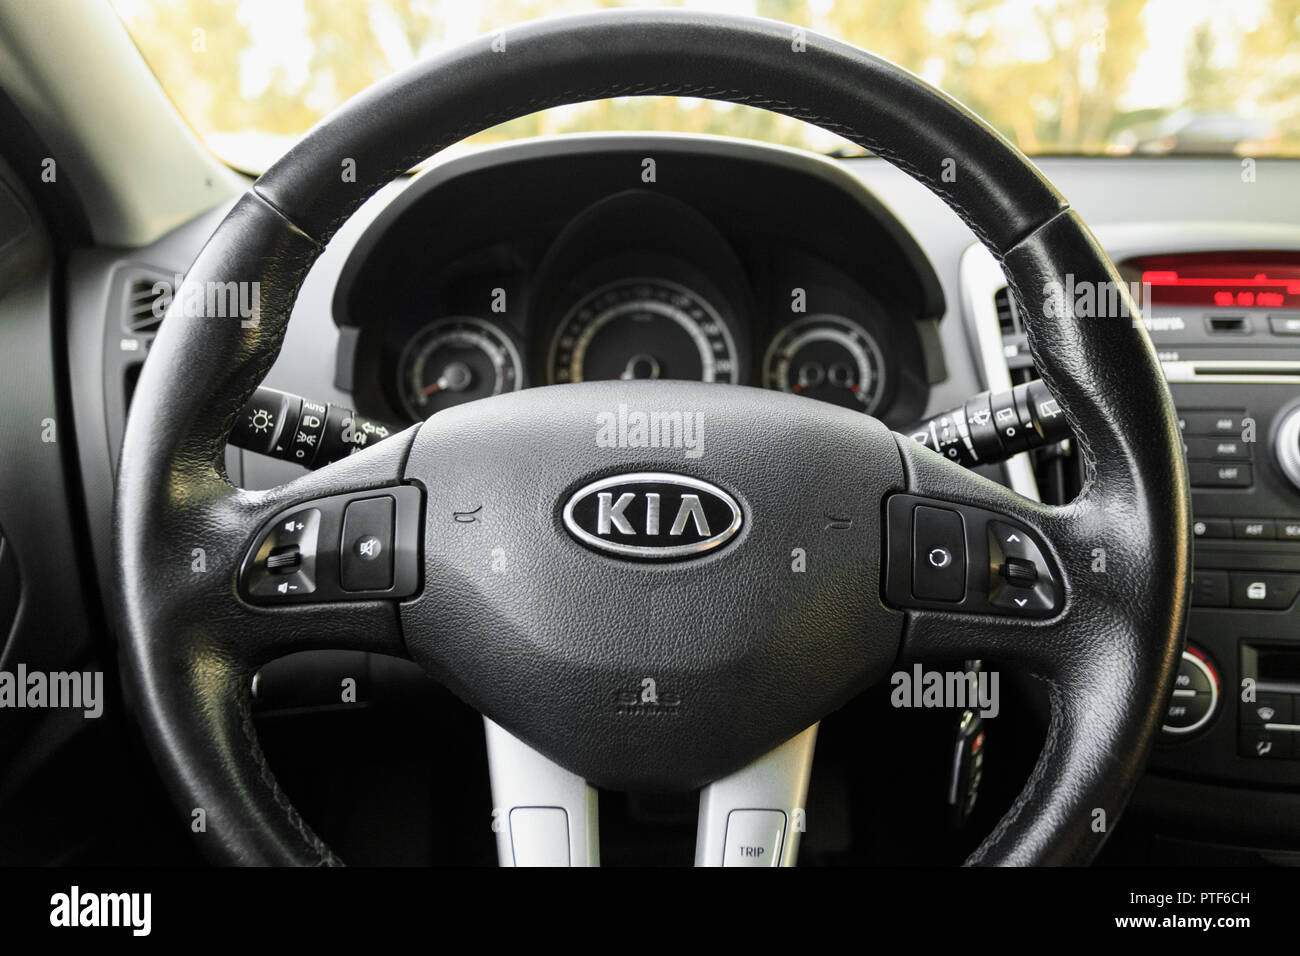 dnipro ukraine september 05 2017 kia ceed interieur rad close up